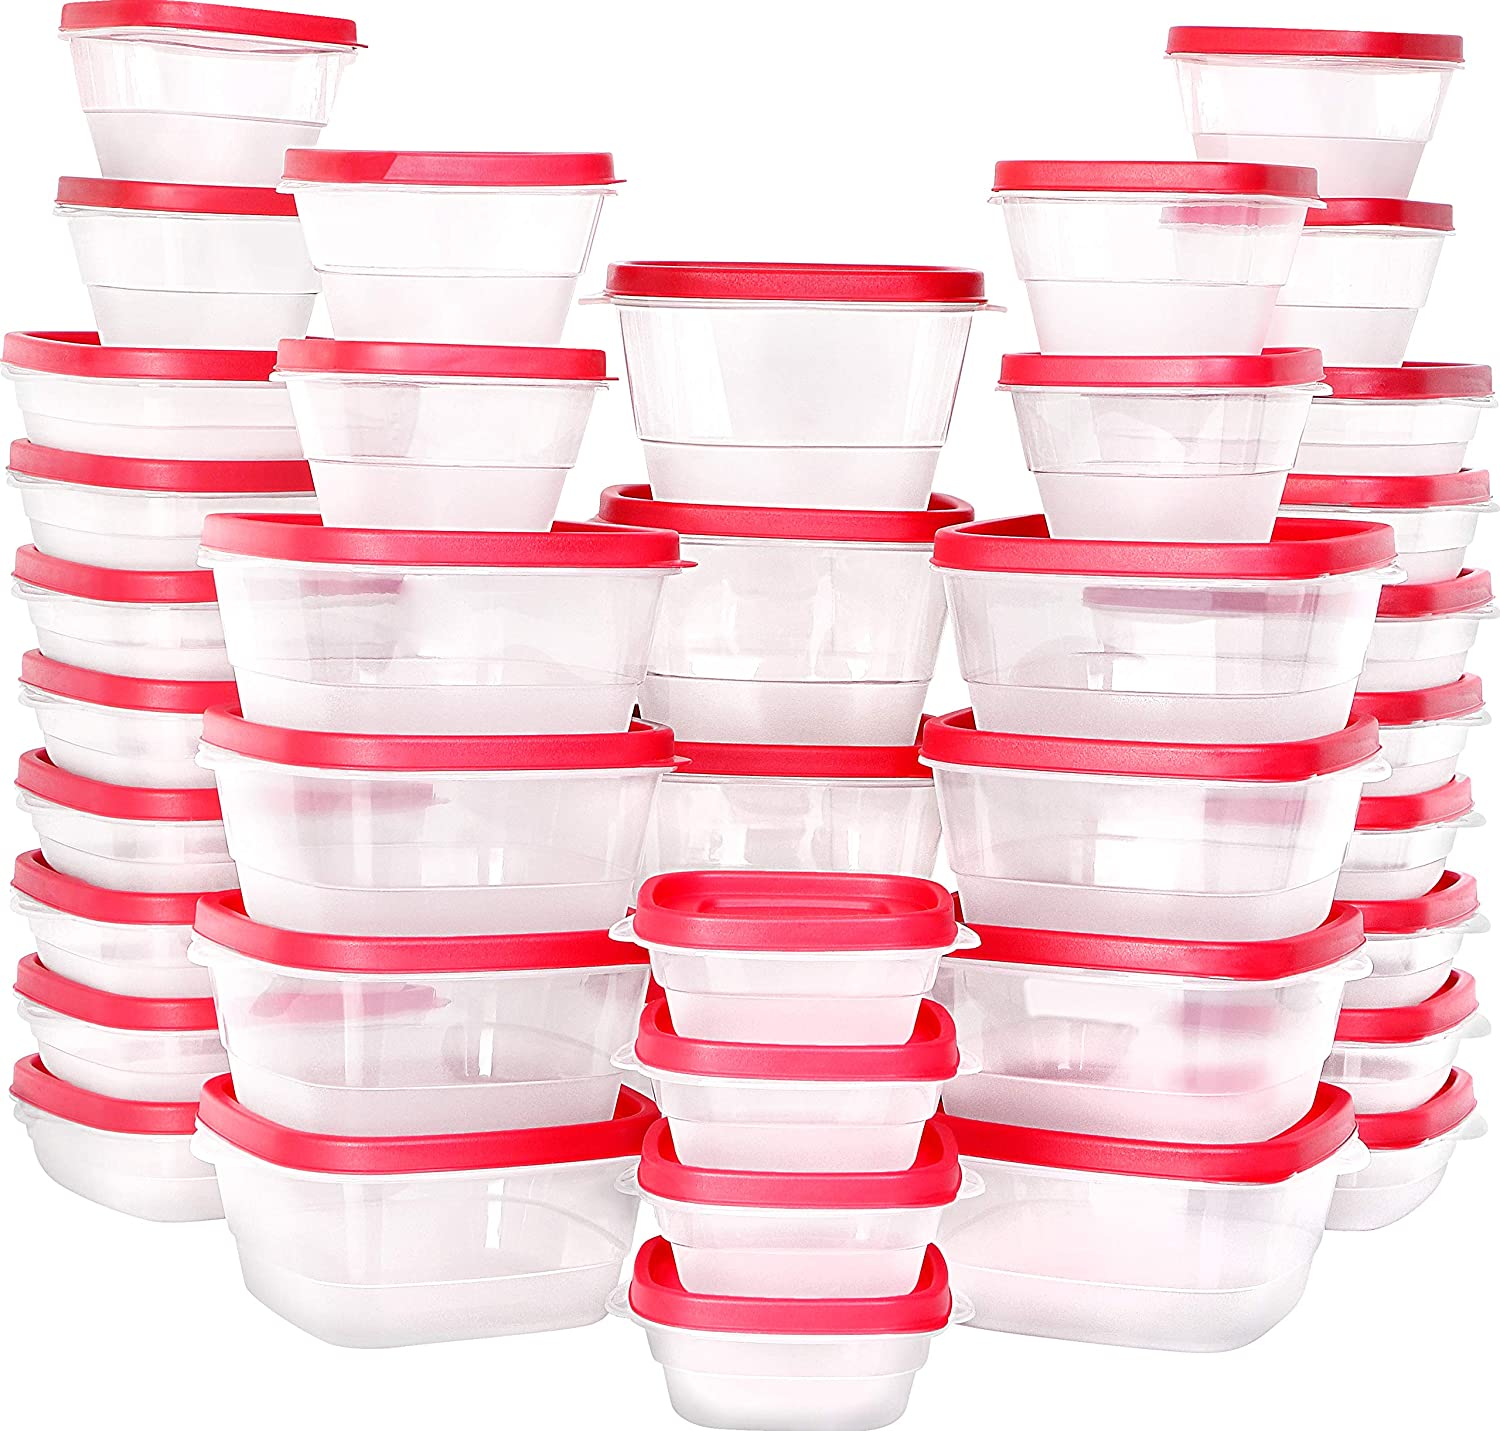 Utopia Kitchen 80 Piece Container Set (40 Containers + 40 Lids) Square Food Container - Red Lid - Snap Lid - Microwave, Dishwasher & Freezer - BPA Free